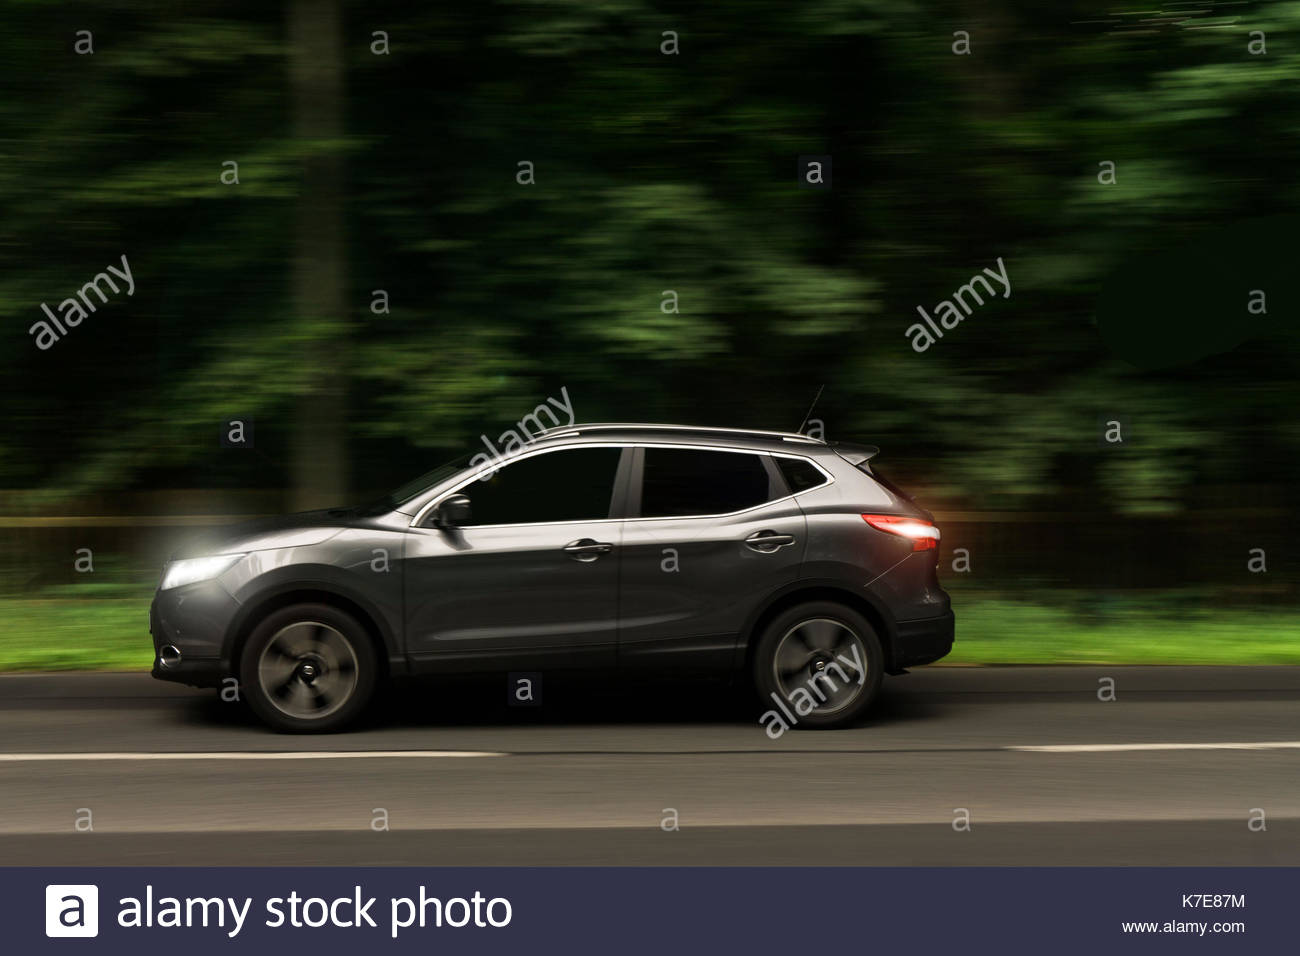 Nissan Qashqai on Country Road - Stock Image